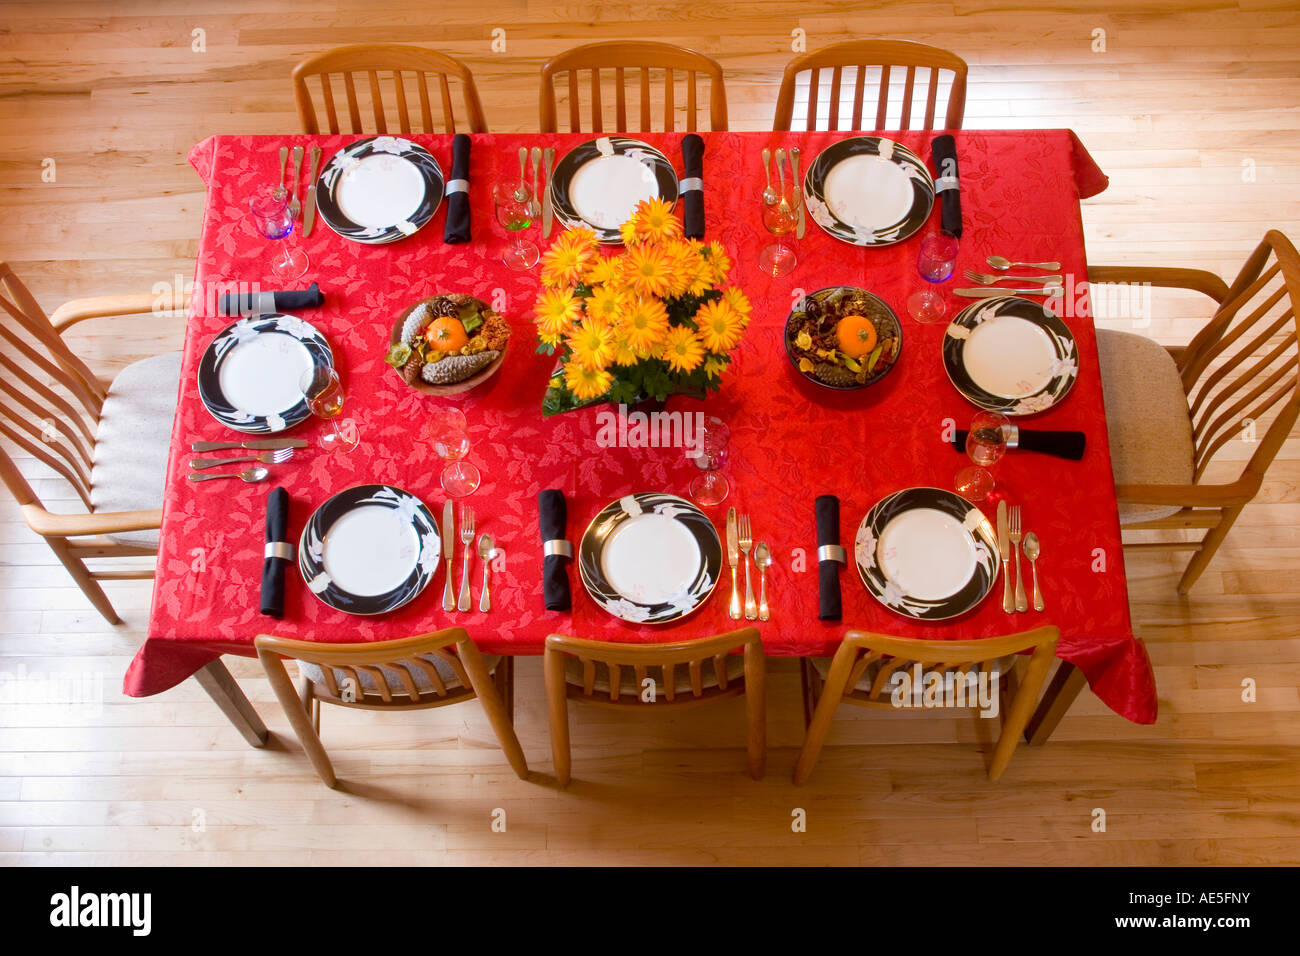 Tablecloth For Dining Room Table Aerial View Of Dining Room Table Place Settings With Red